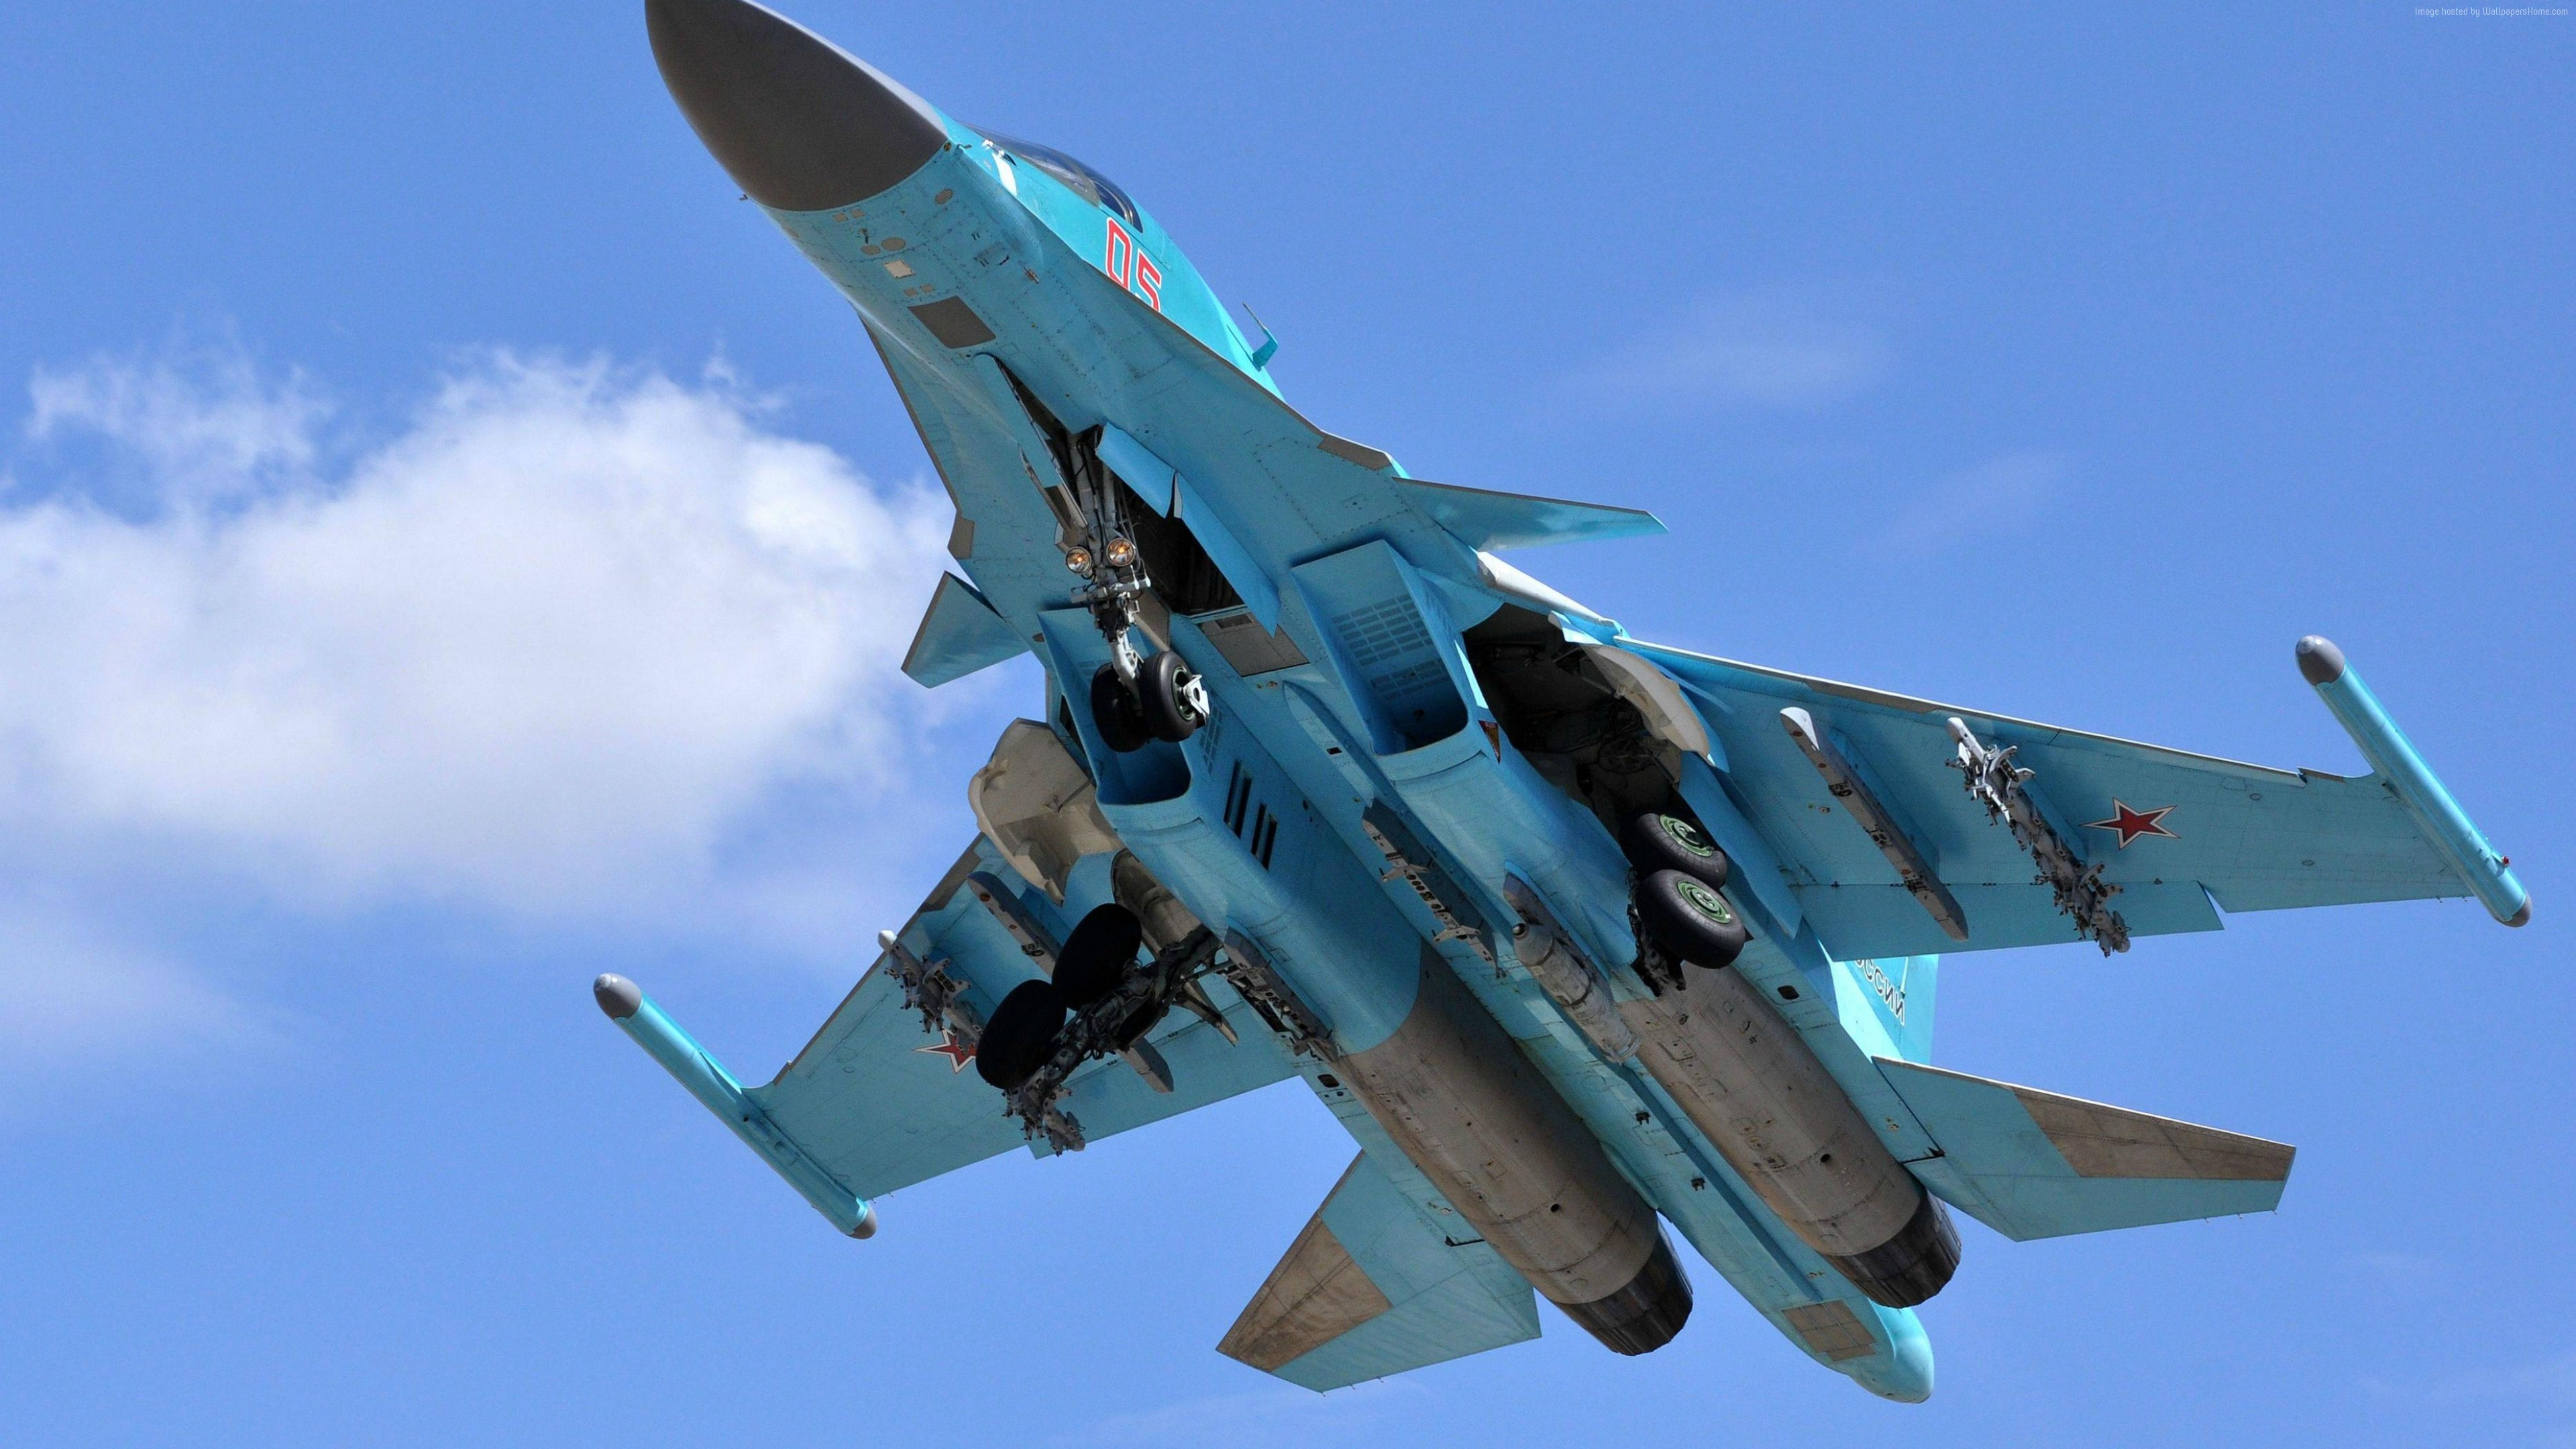 Wallpaper Sukhoi Su-34, fighter aircraft, Russian army, air force, Russia, Military